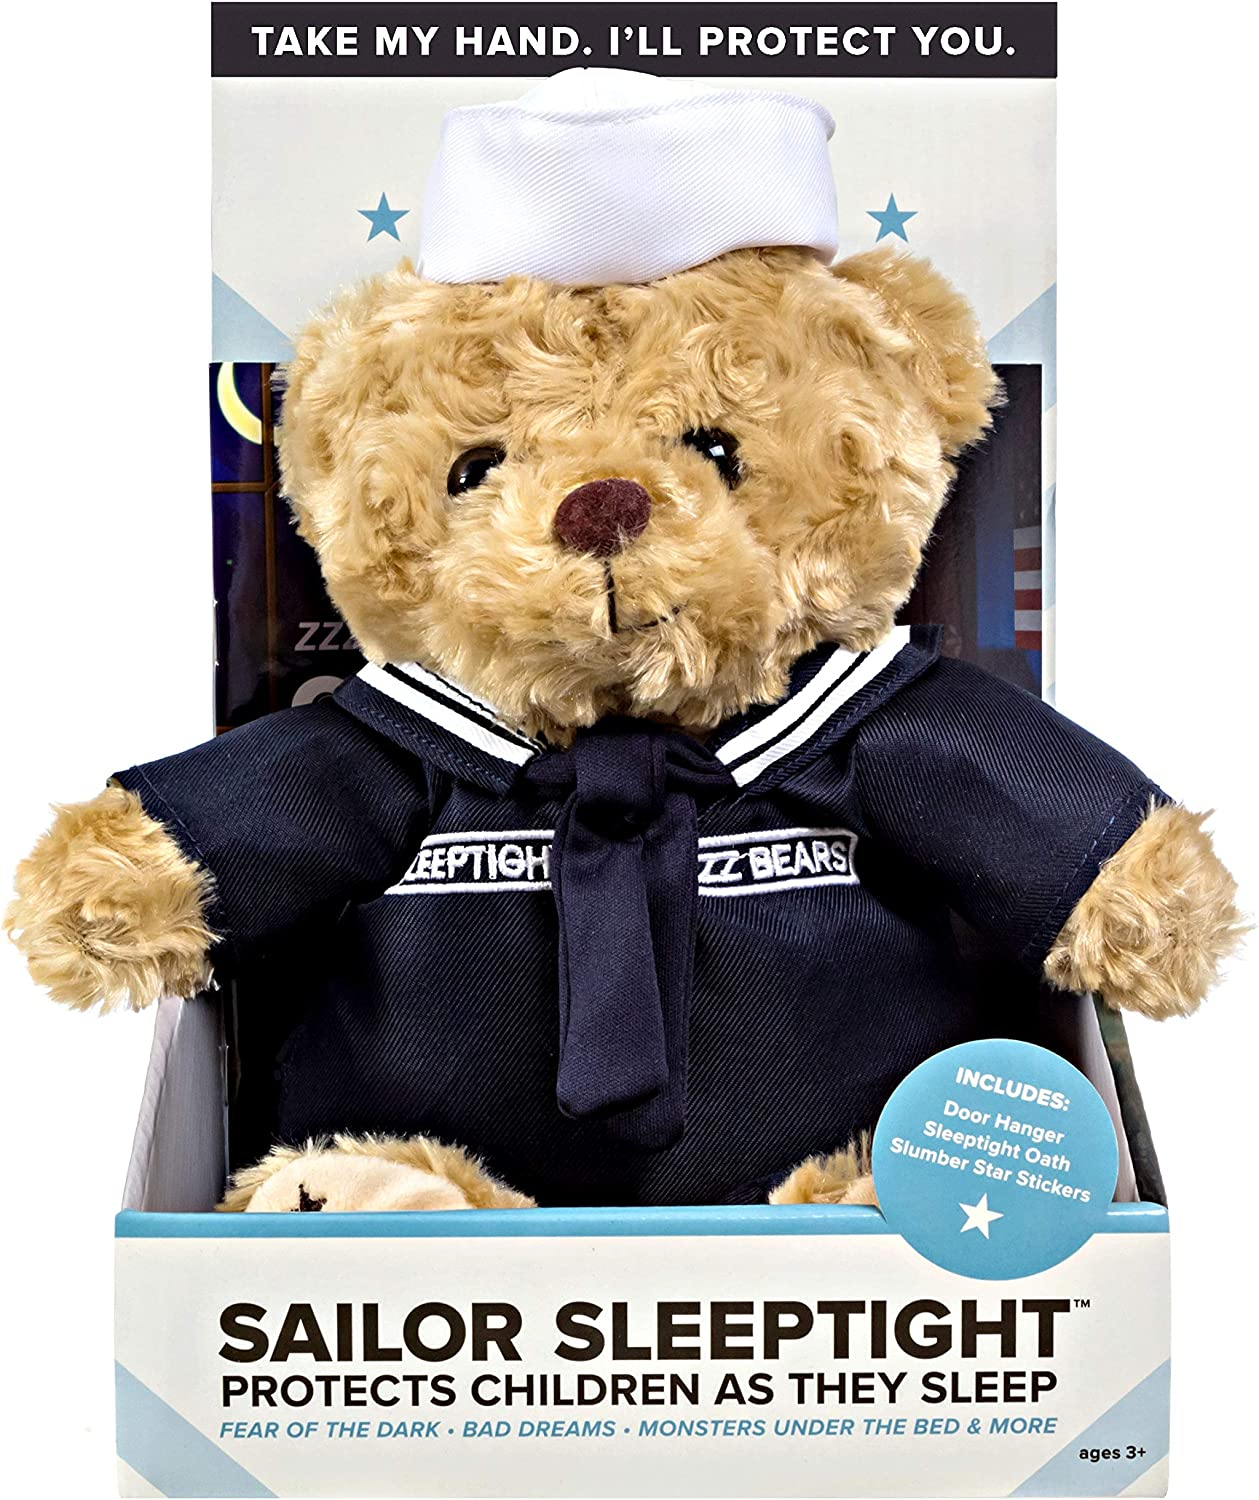 Police and Fireman Teddy Bears Plush Toys to Honor Protect and Cuddle at Bedtime ZZZ Bears Military Air Force Uniform